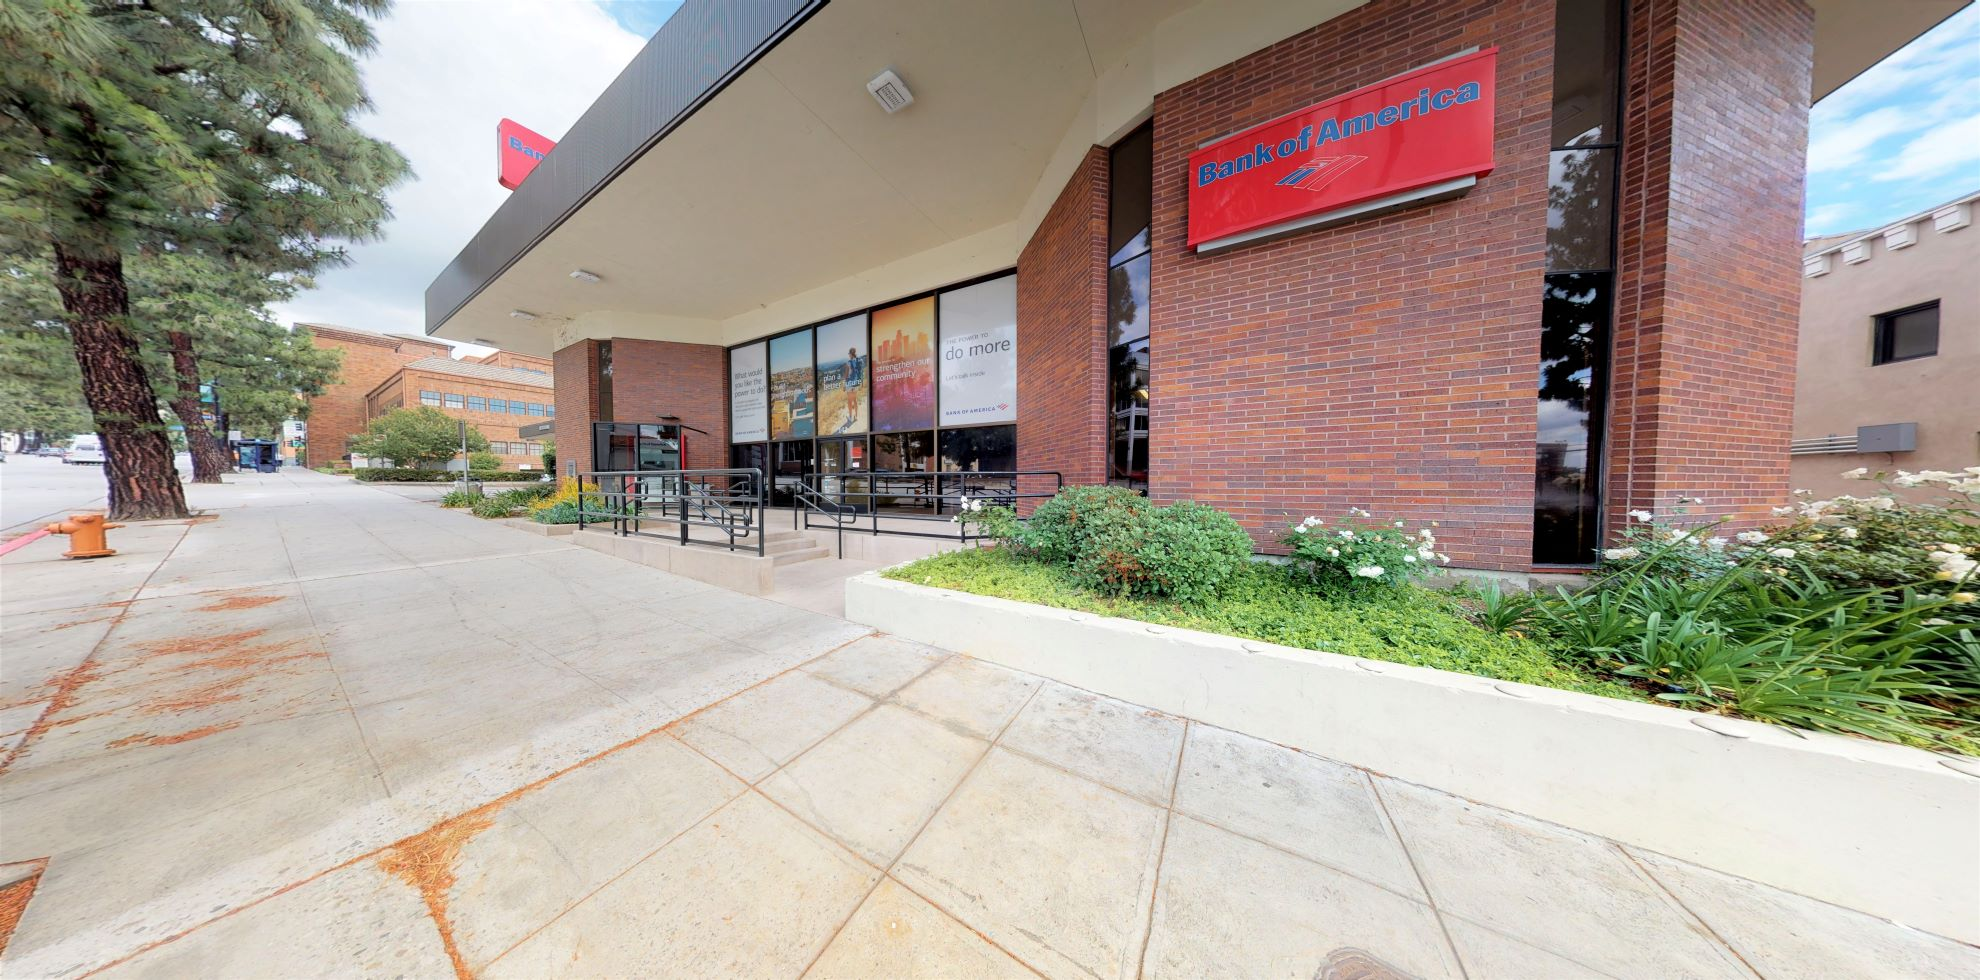 Bank of America financial center with drive-thru ATM | 142 E Olive Ave, Burbank, CA 91502